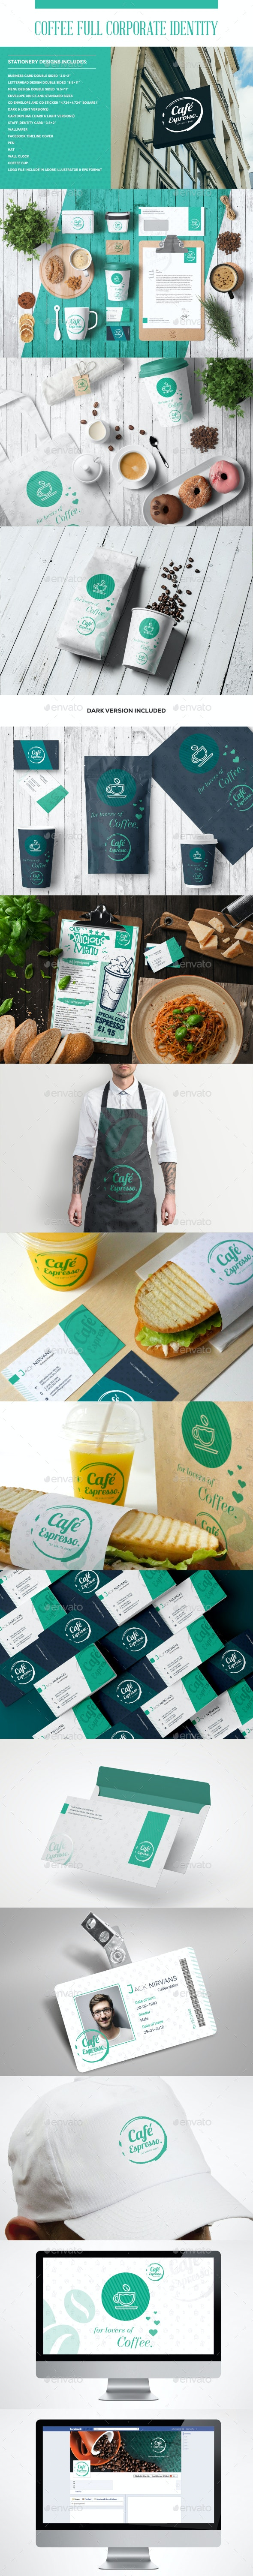 Coffee Full Corporate Identity - Stationery Print Templates